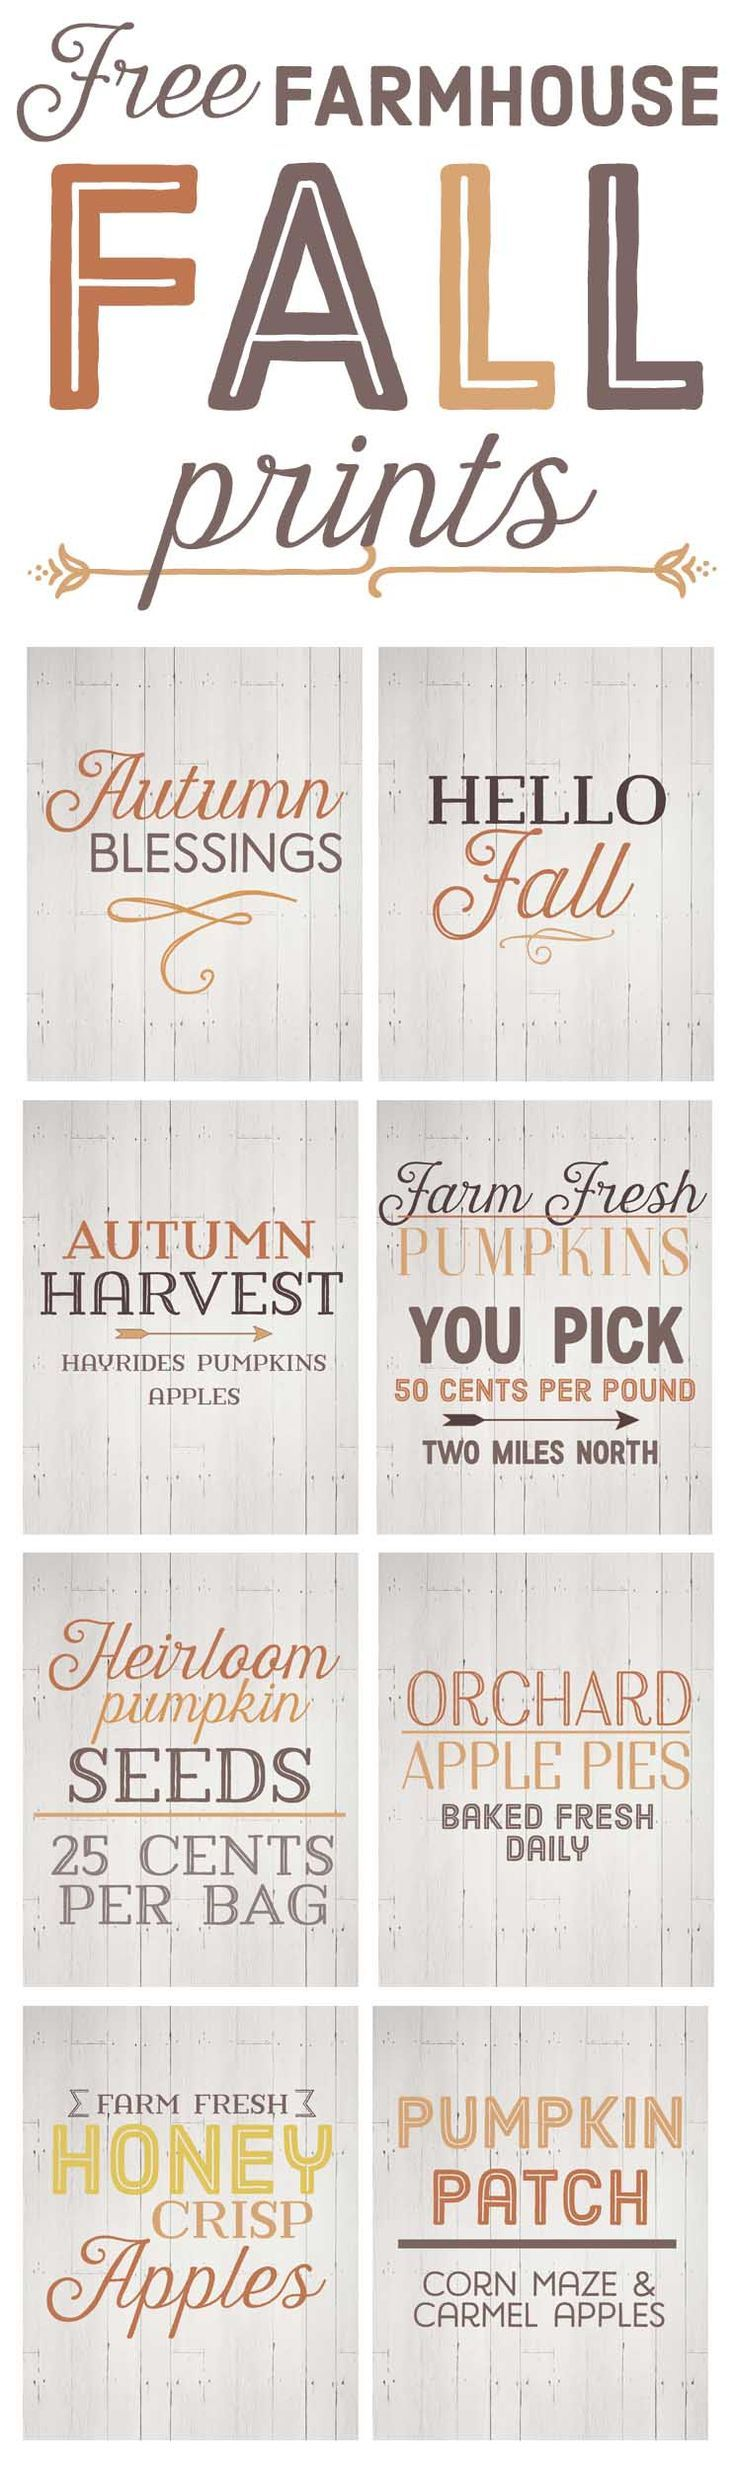 611 best printables images on pinterest cards decoration and